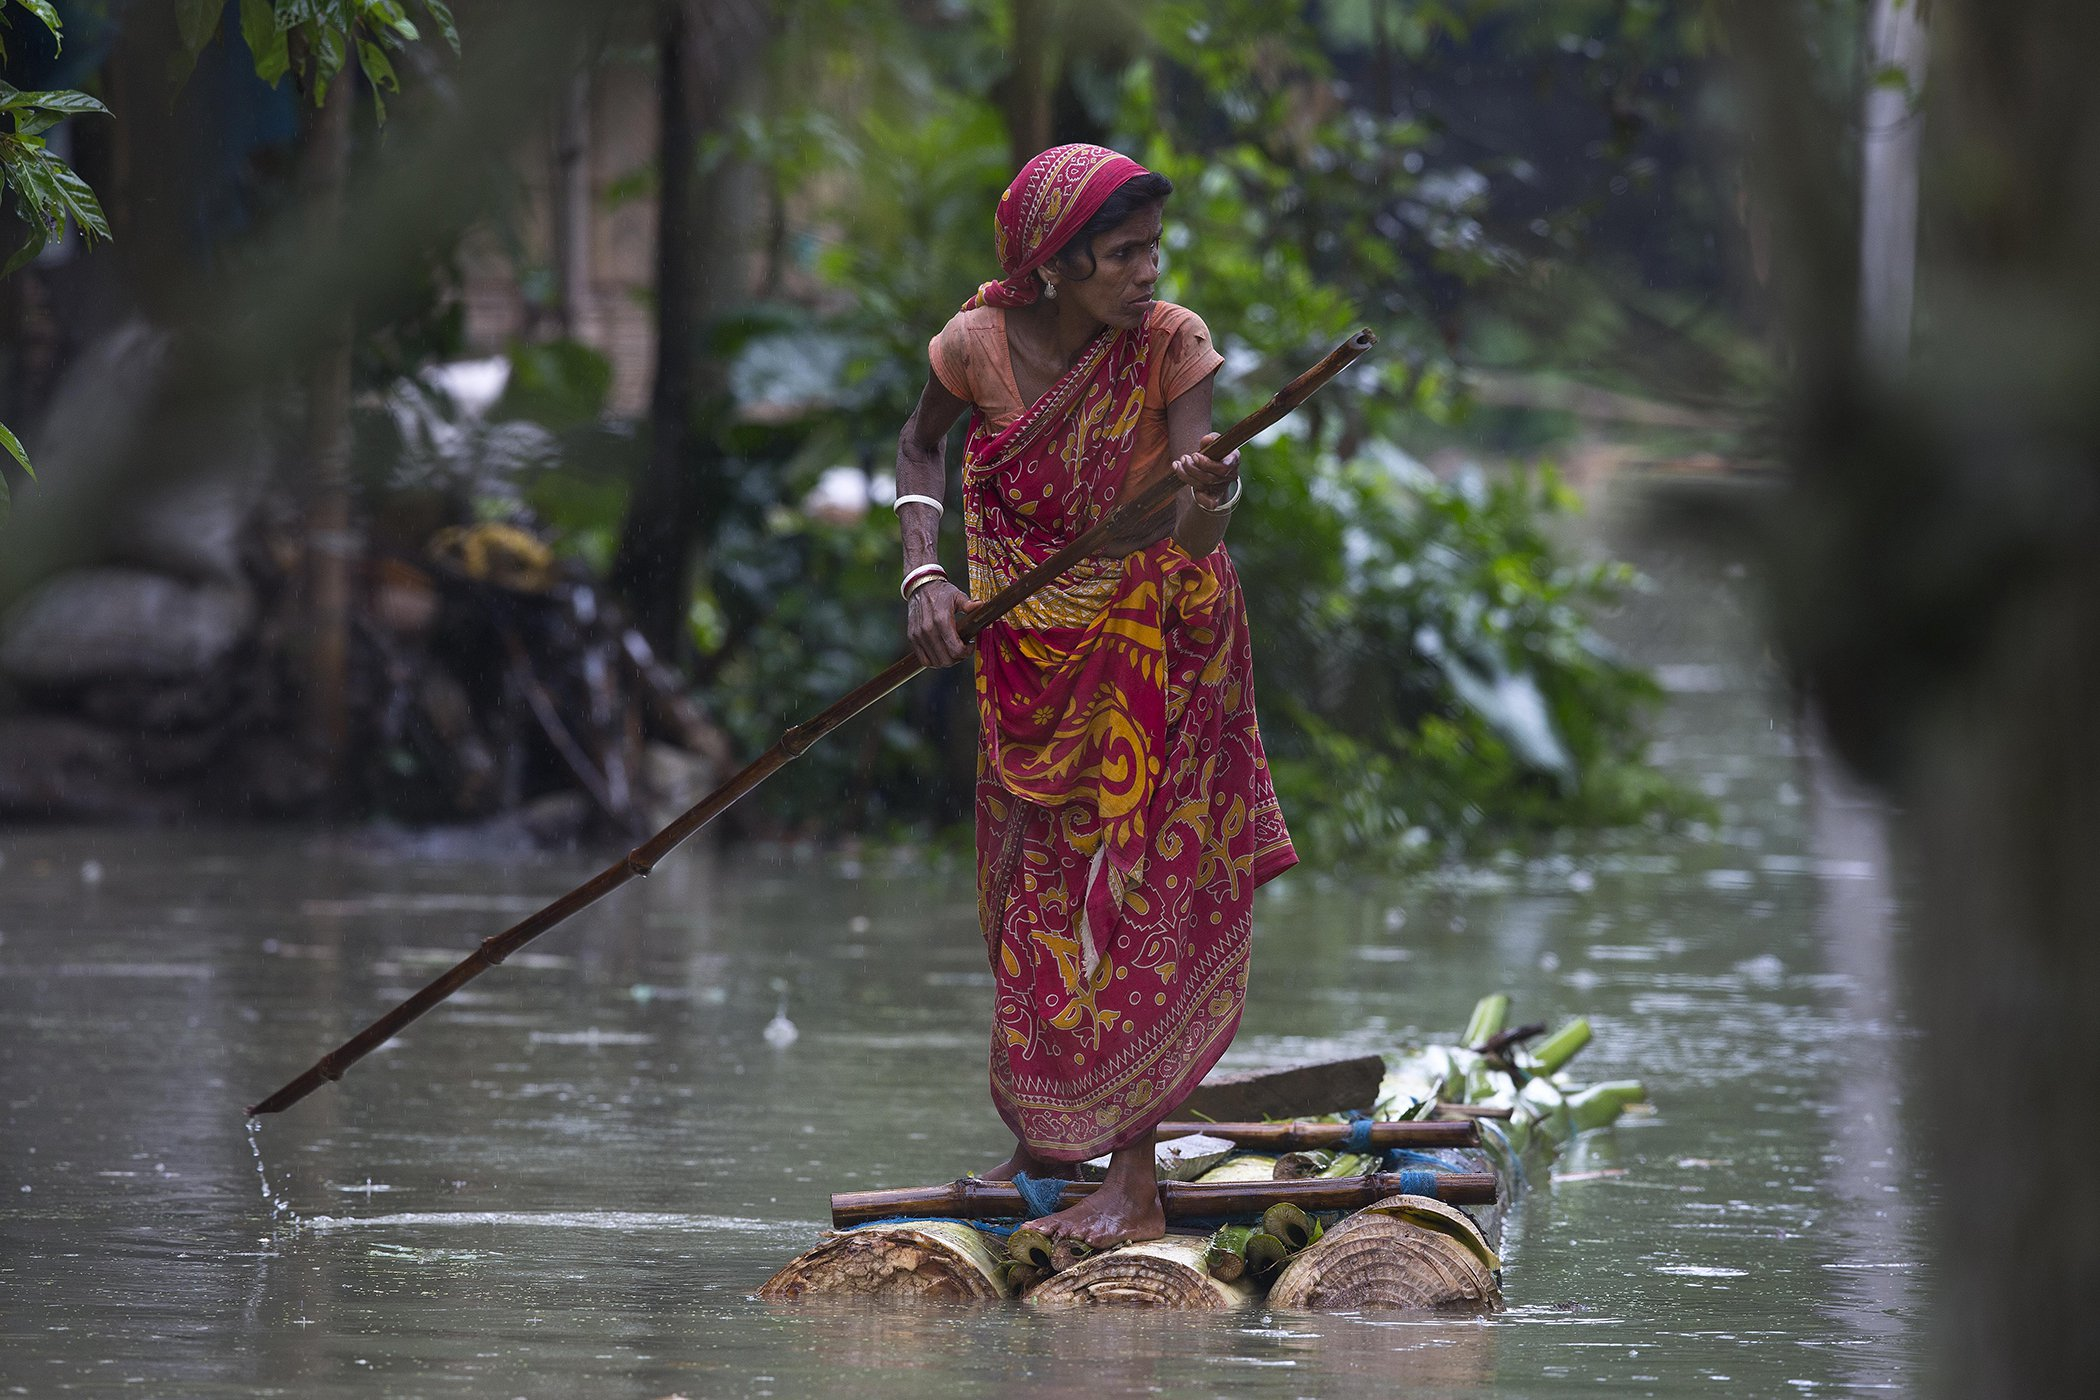 India-South-Asia-Flooding-Monsoon-Season.jpg